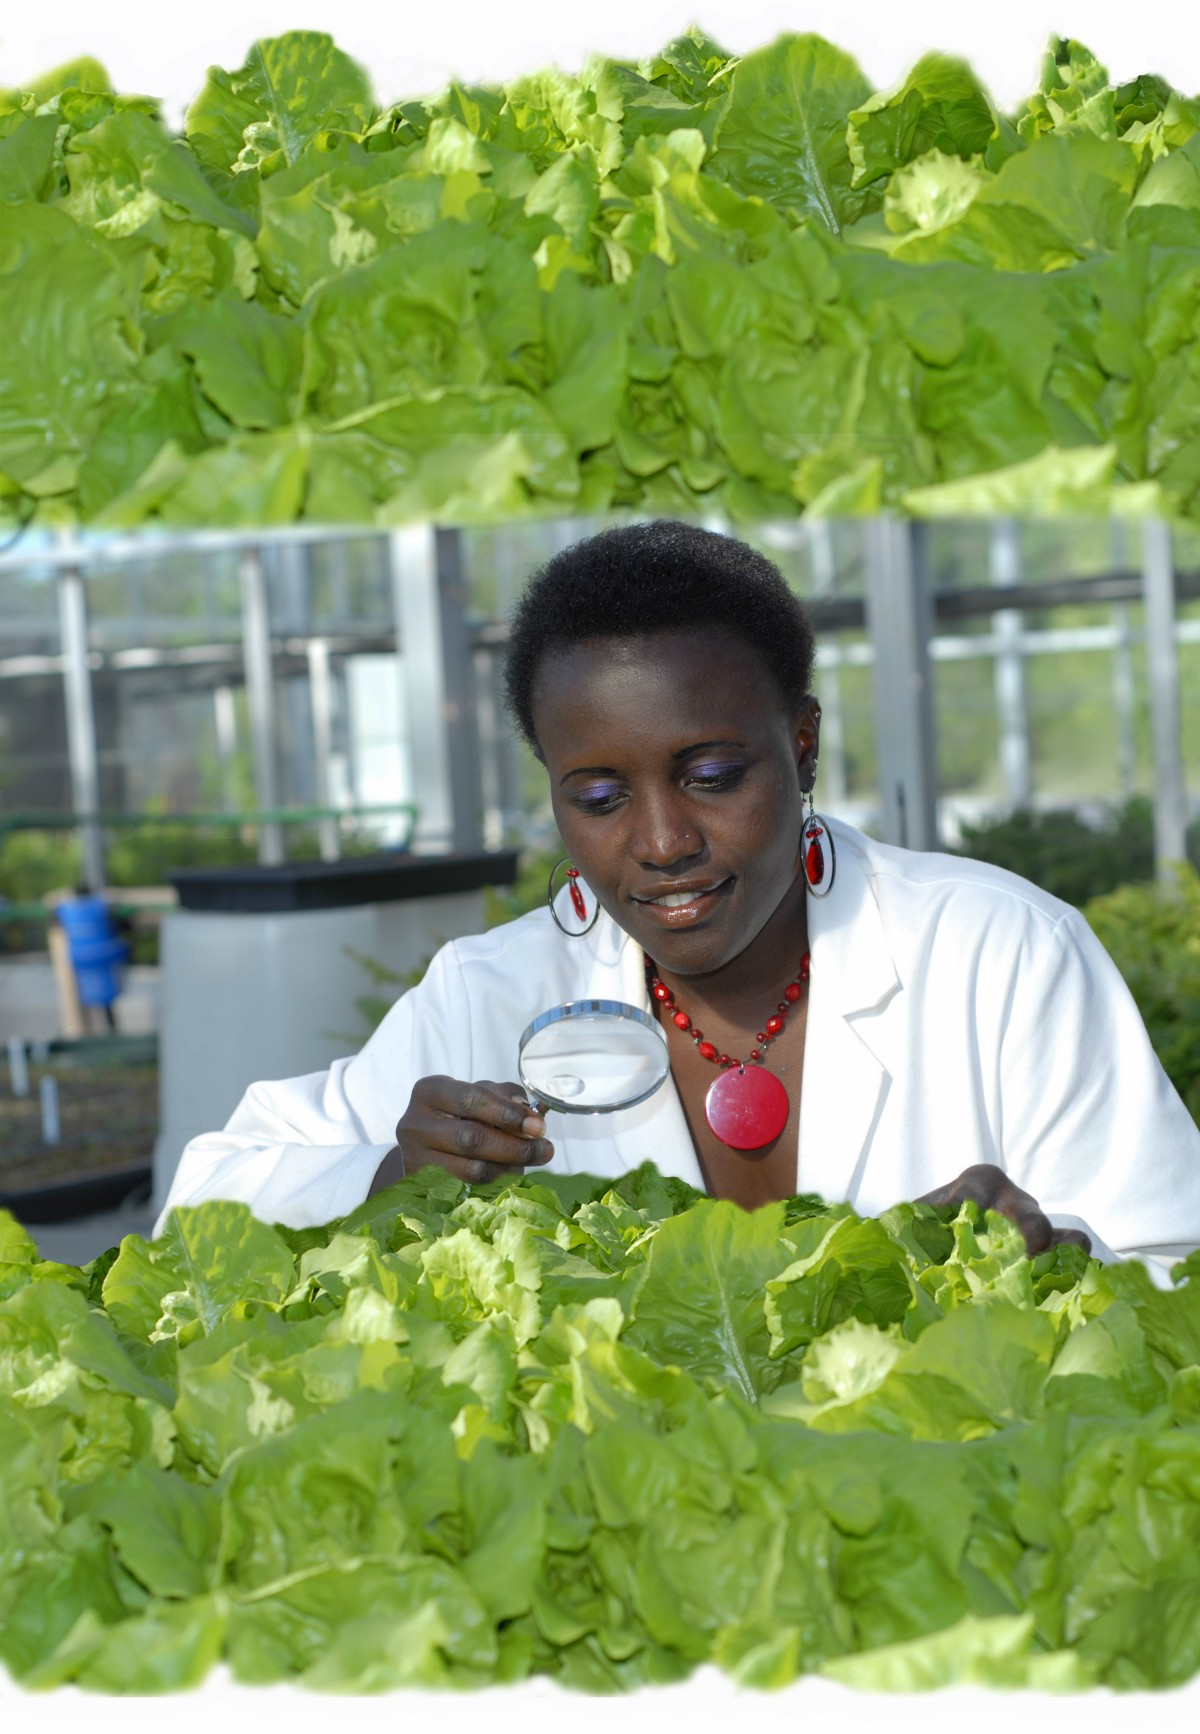 Esther Ngumbi at Auburn University Plant Science Research Center (picture taken by Laryssa Ferrara).